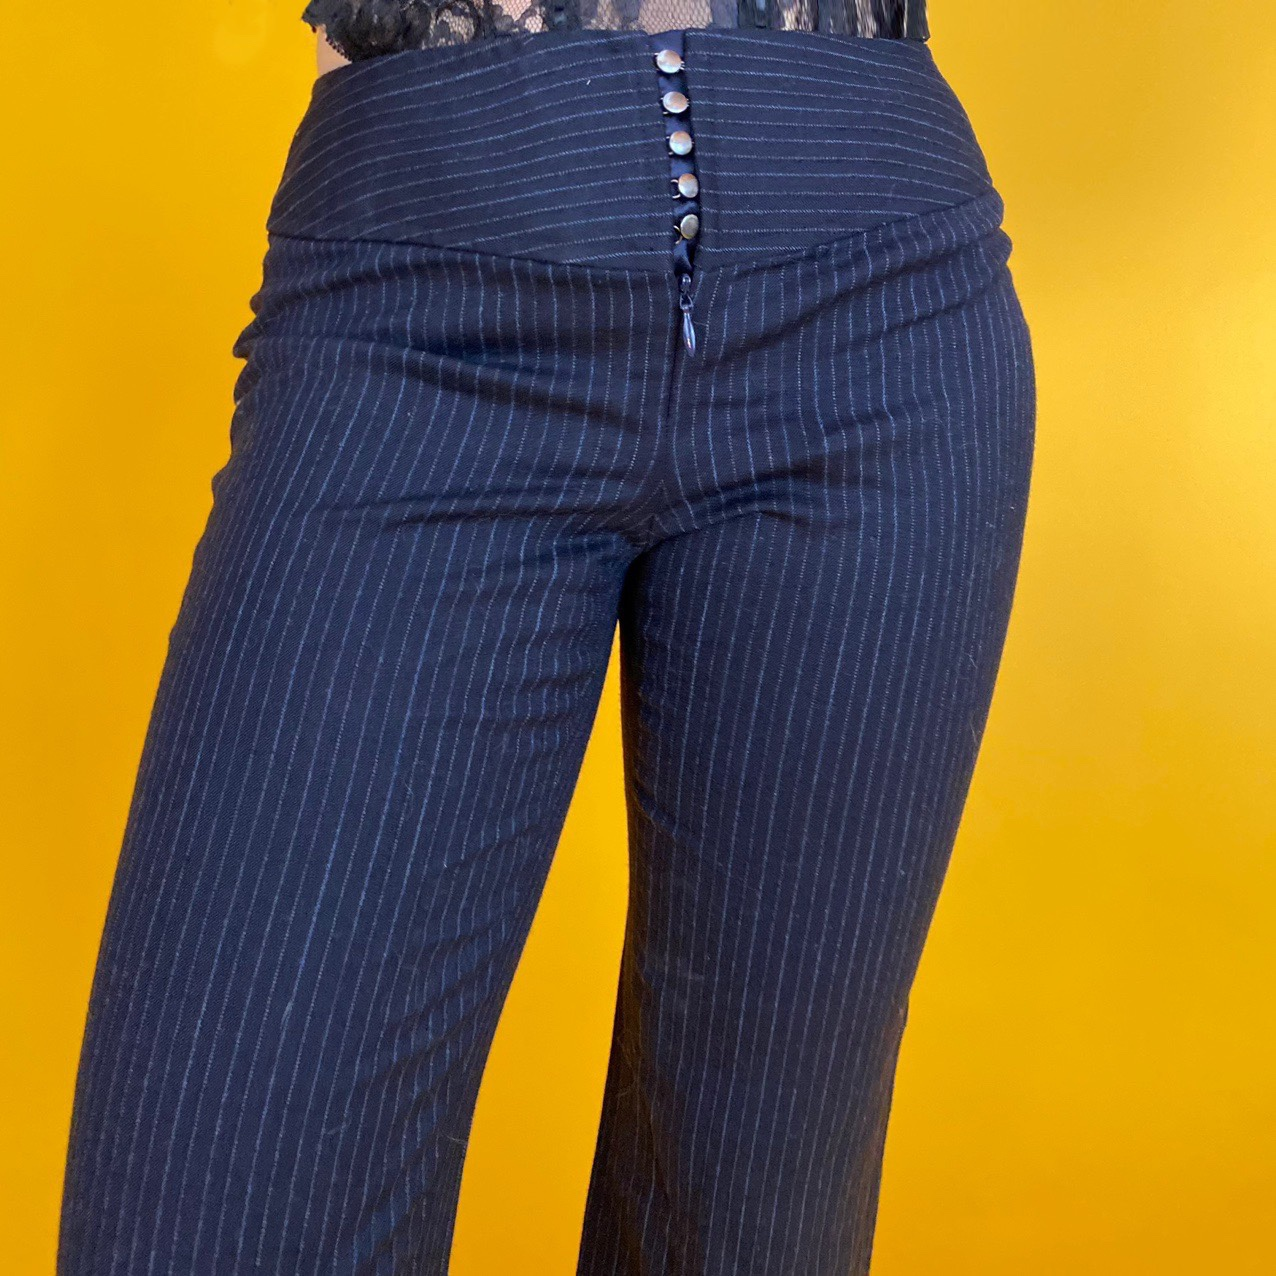 Product Image 1 - Early 2000's low rise pinstripe